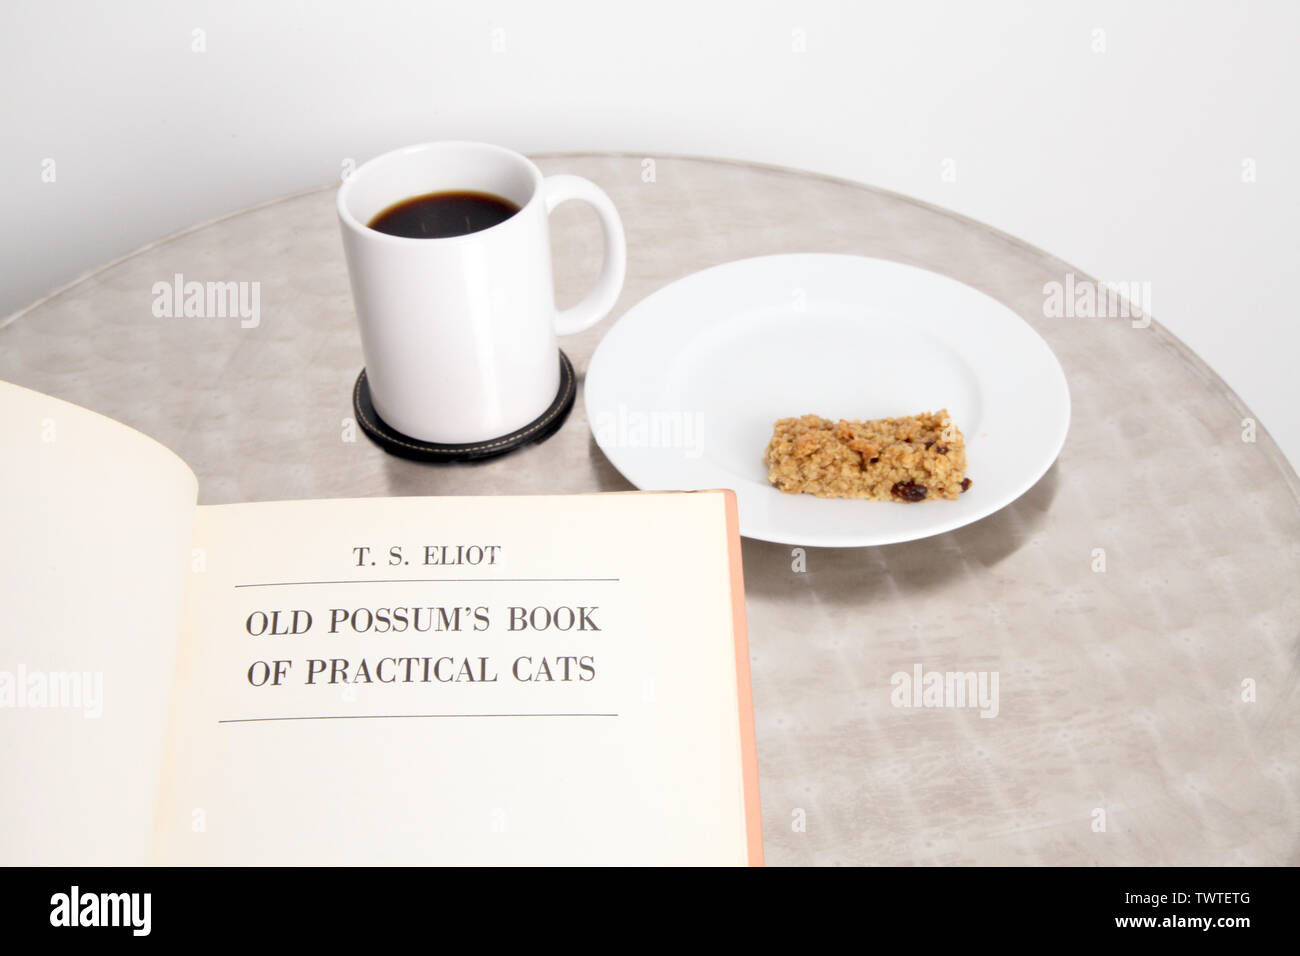 Old Possums Book of Practical Cats - A book of poems by T.S. Eliot being read at silver bistro table with coffee and cake - Stock Image